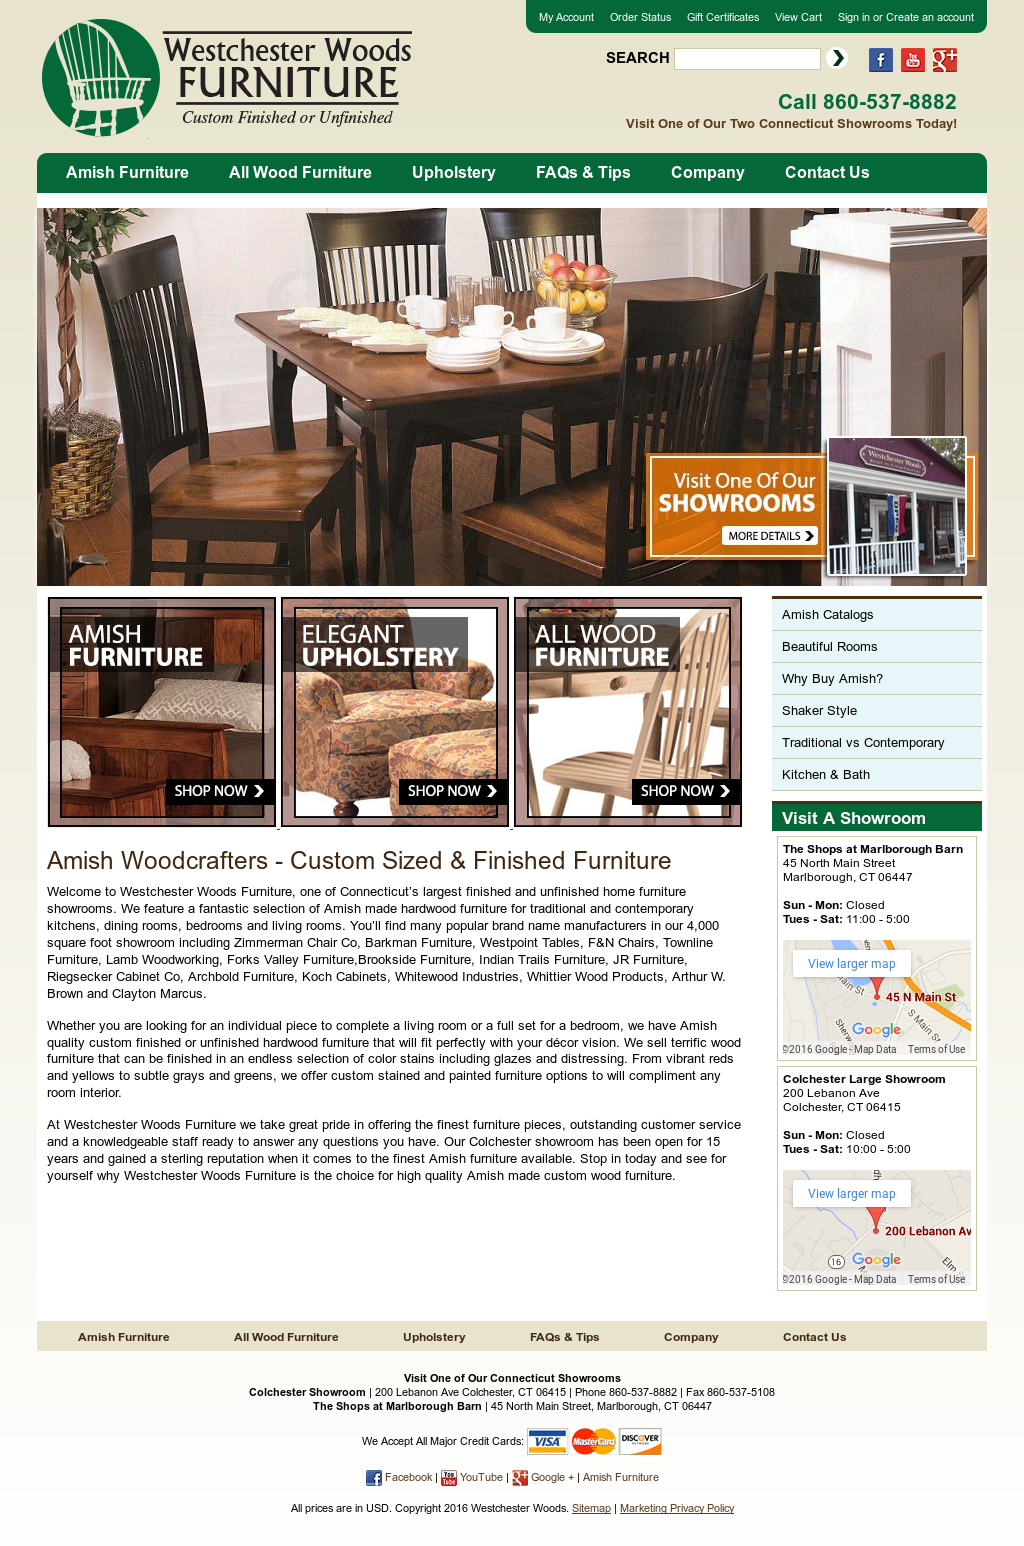 Ordinaire Westchester Woods Furniture Competitors, Revenue And Employees   Owler  Company Profile